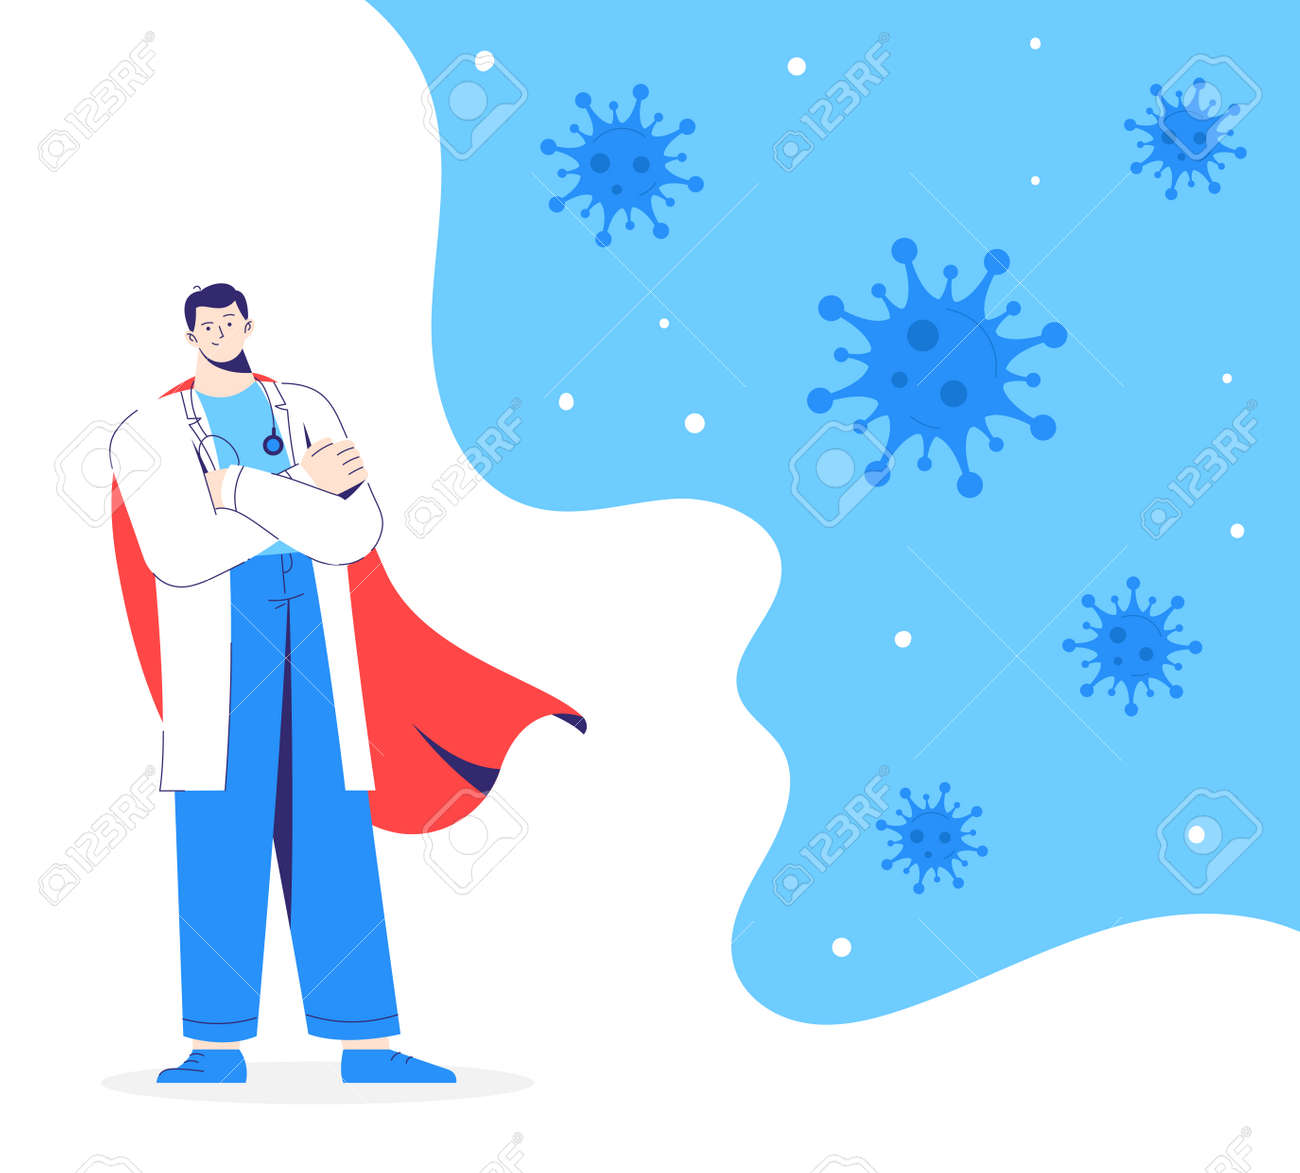 Doctor hero in white coat and red cloak stands on the protection against viruses. - 171651044